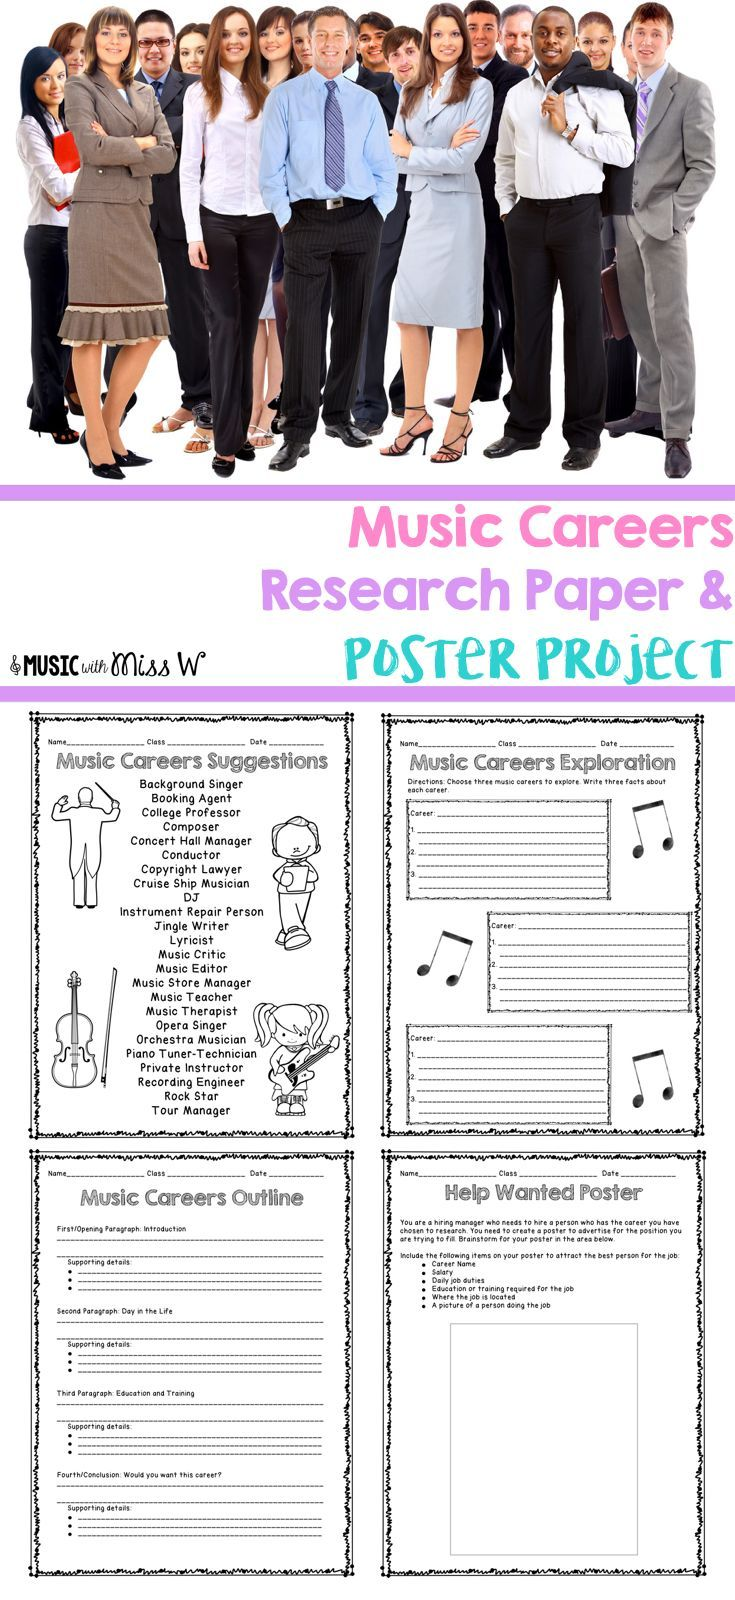 Music Careers Research Paper and Poster Project | Pinterest | Cross ...